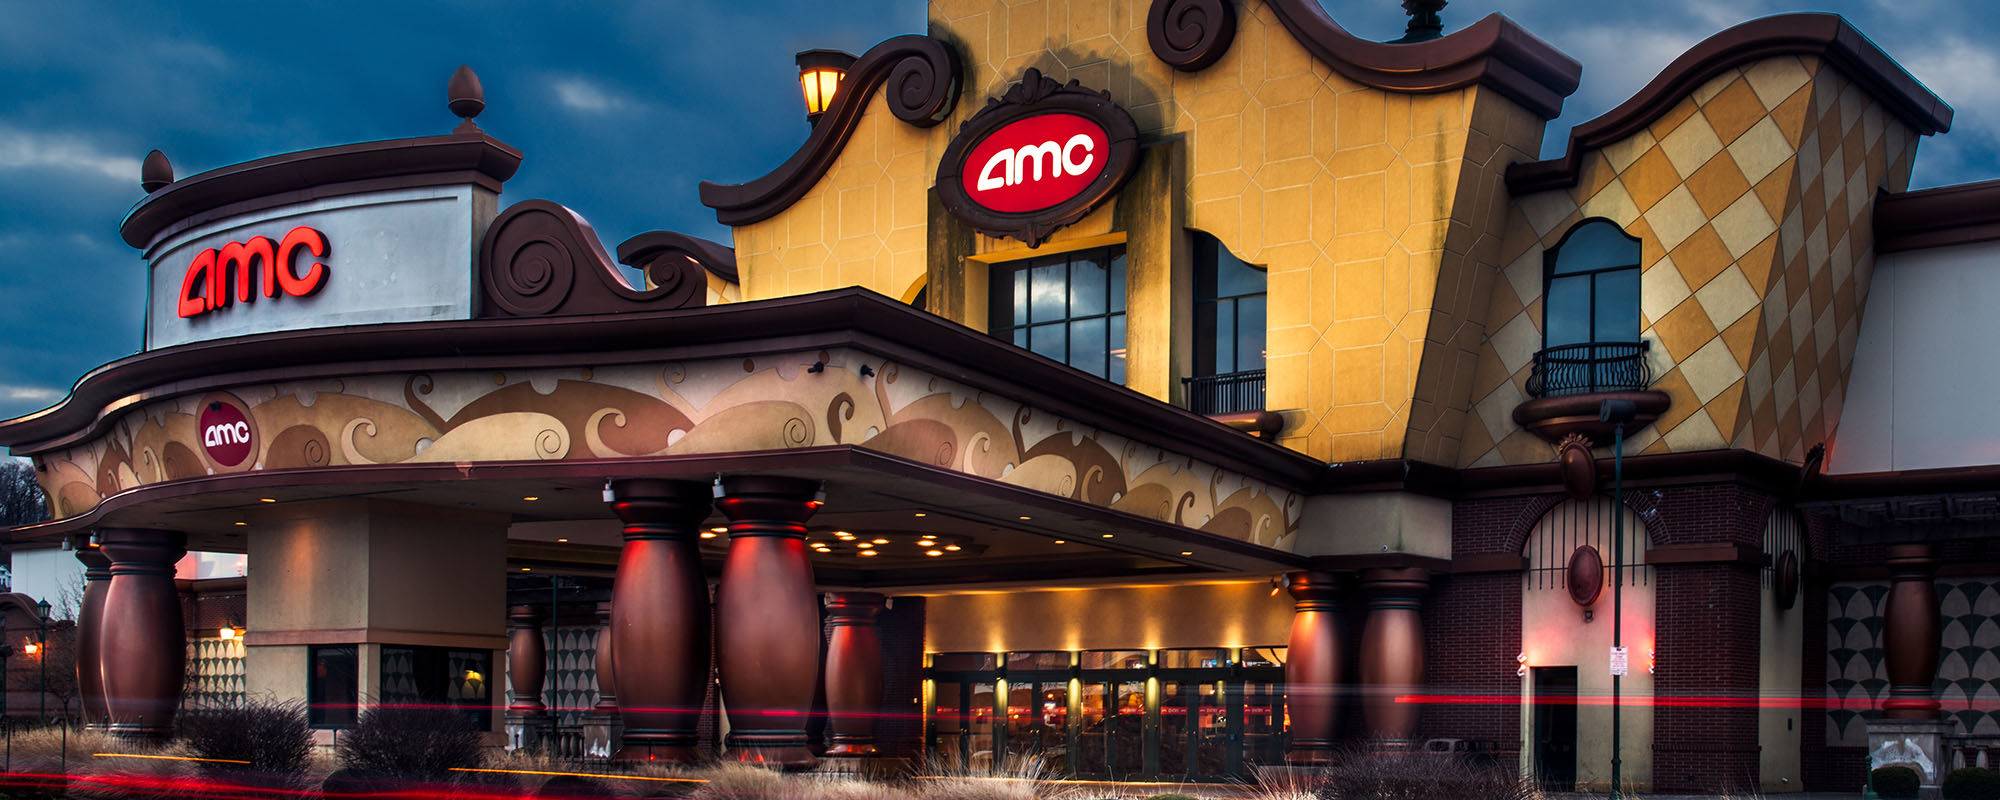 Amc Waterfront 22 West Homestead Pennsylvania 15120 Amc Theatres